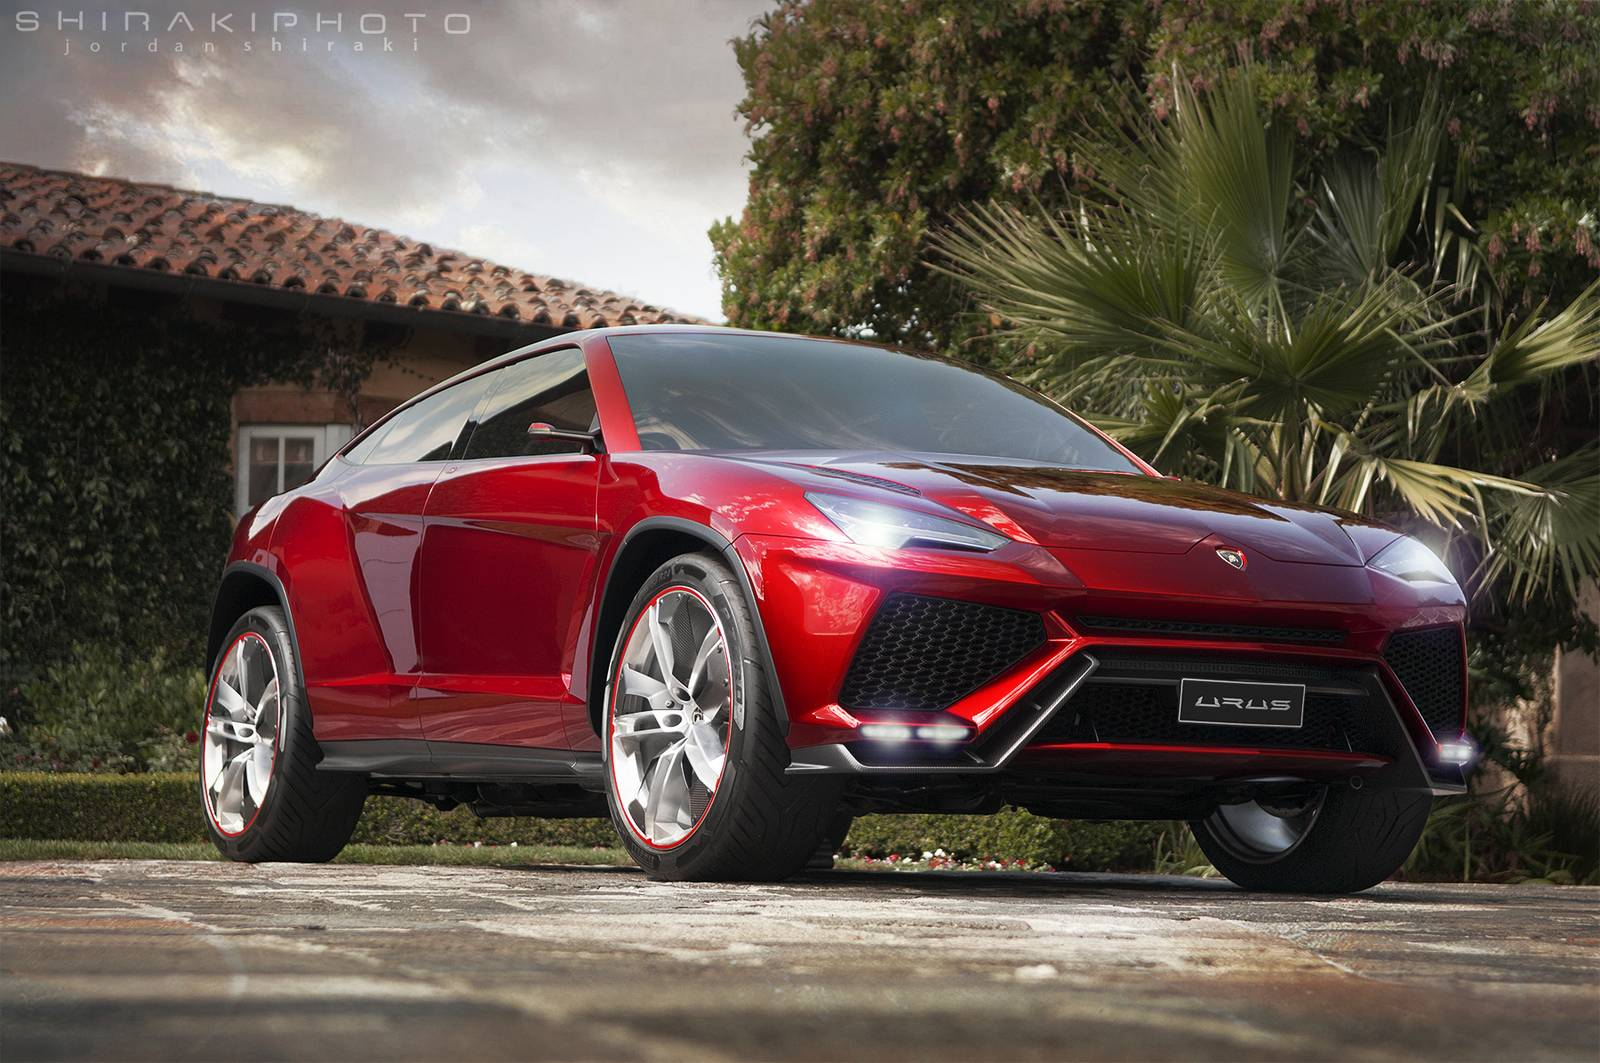 production spec lamborghini urus suv to remain close to concept gtspirit. Black Bedroom Furniture Sets. Home Design Ideas